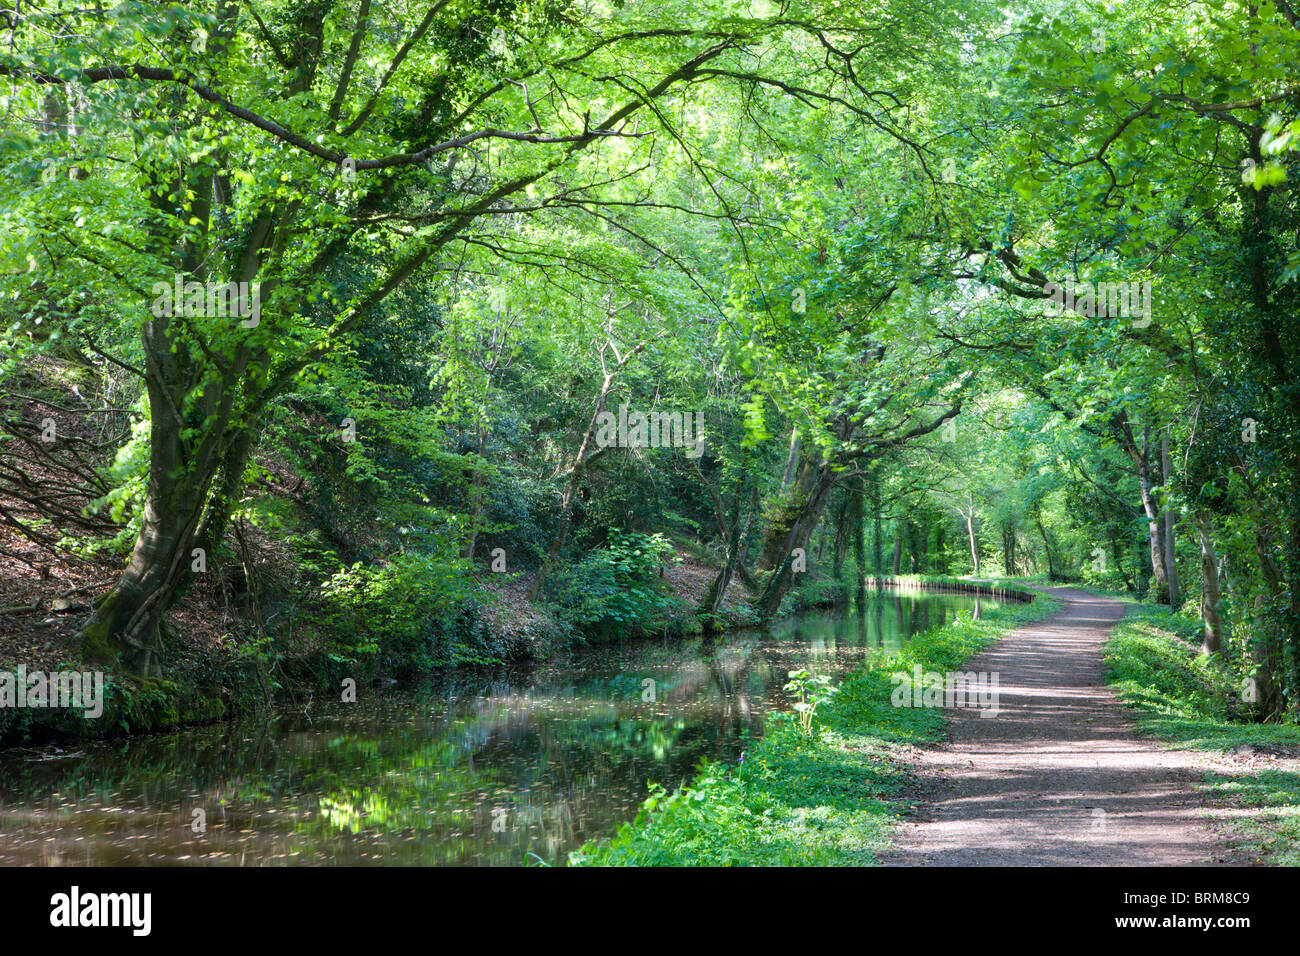 Monmouthshire and Brecon Canal near Llanhamlach, Brecon Beacons National Park, Powys, Wales. - Stock Image